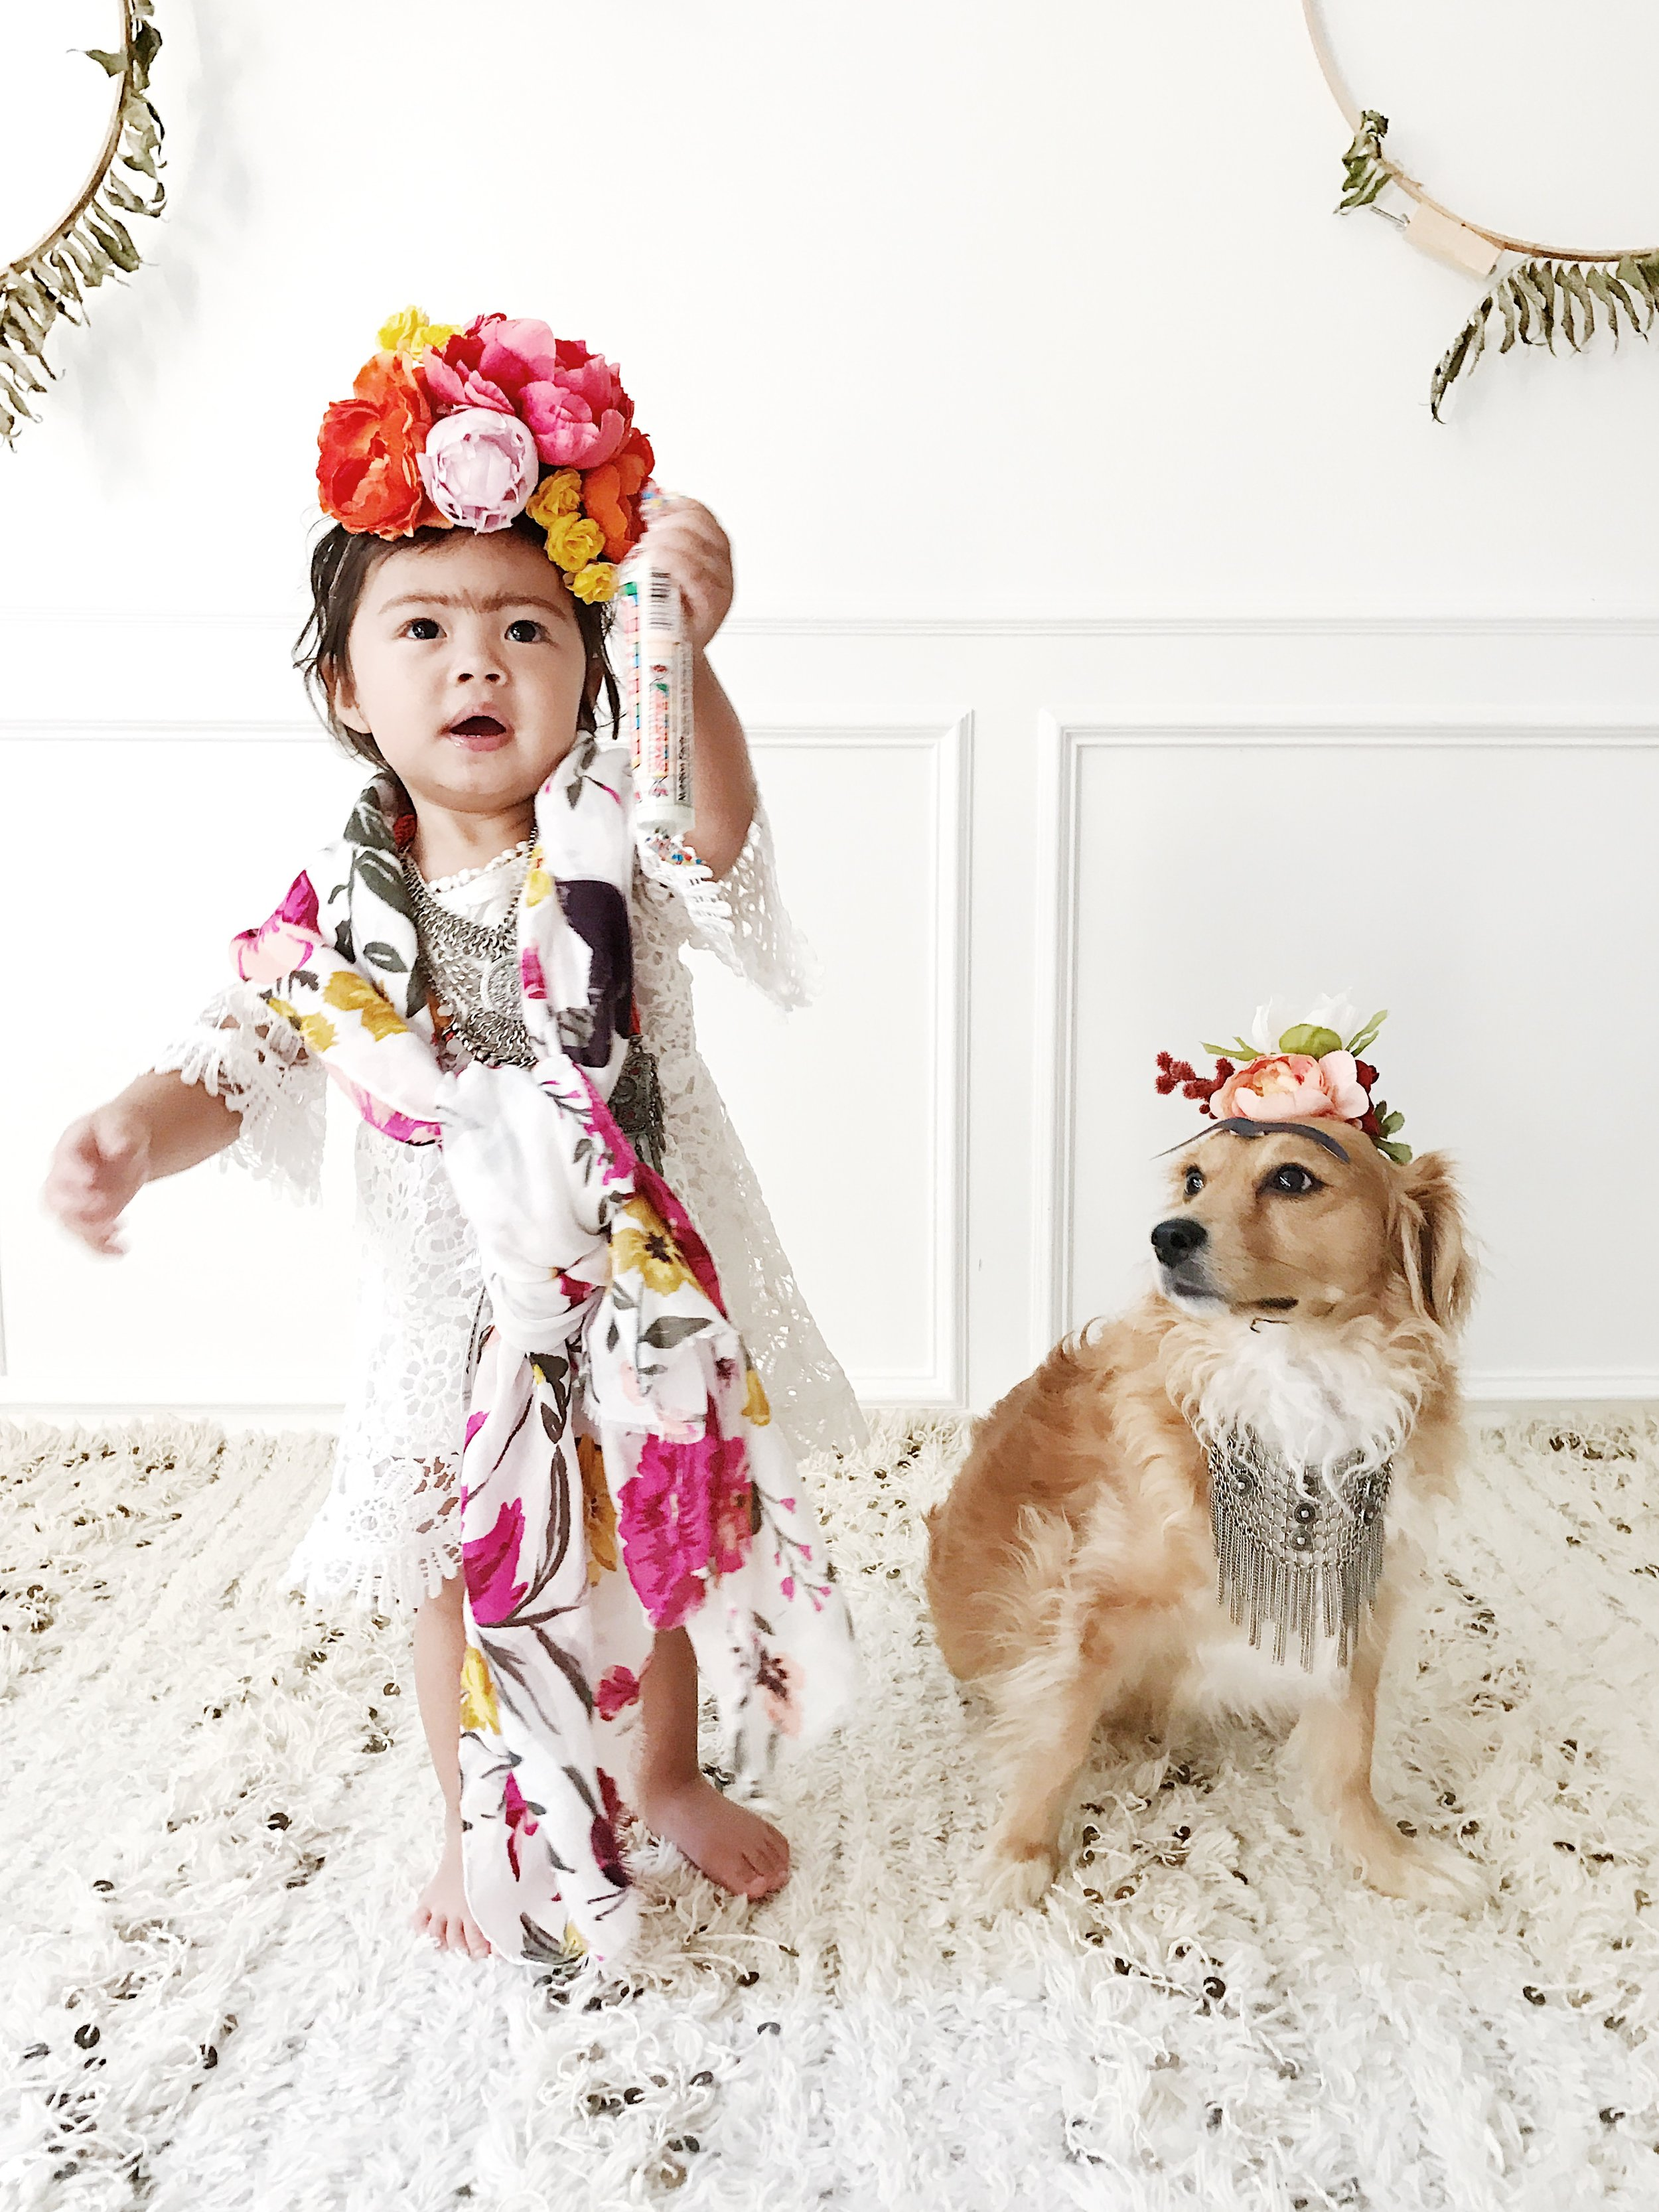 "Smarties Candy ""Smarties Throughout History"" Baby Kids Frida Halloween Costume"